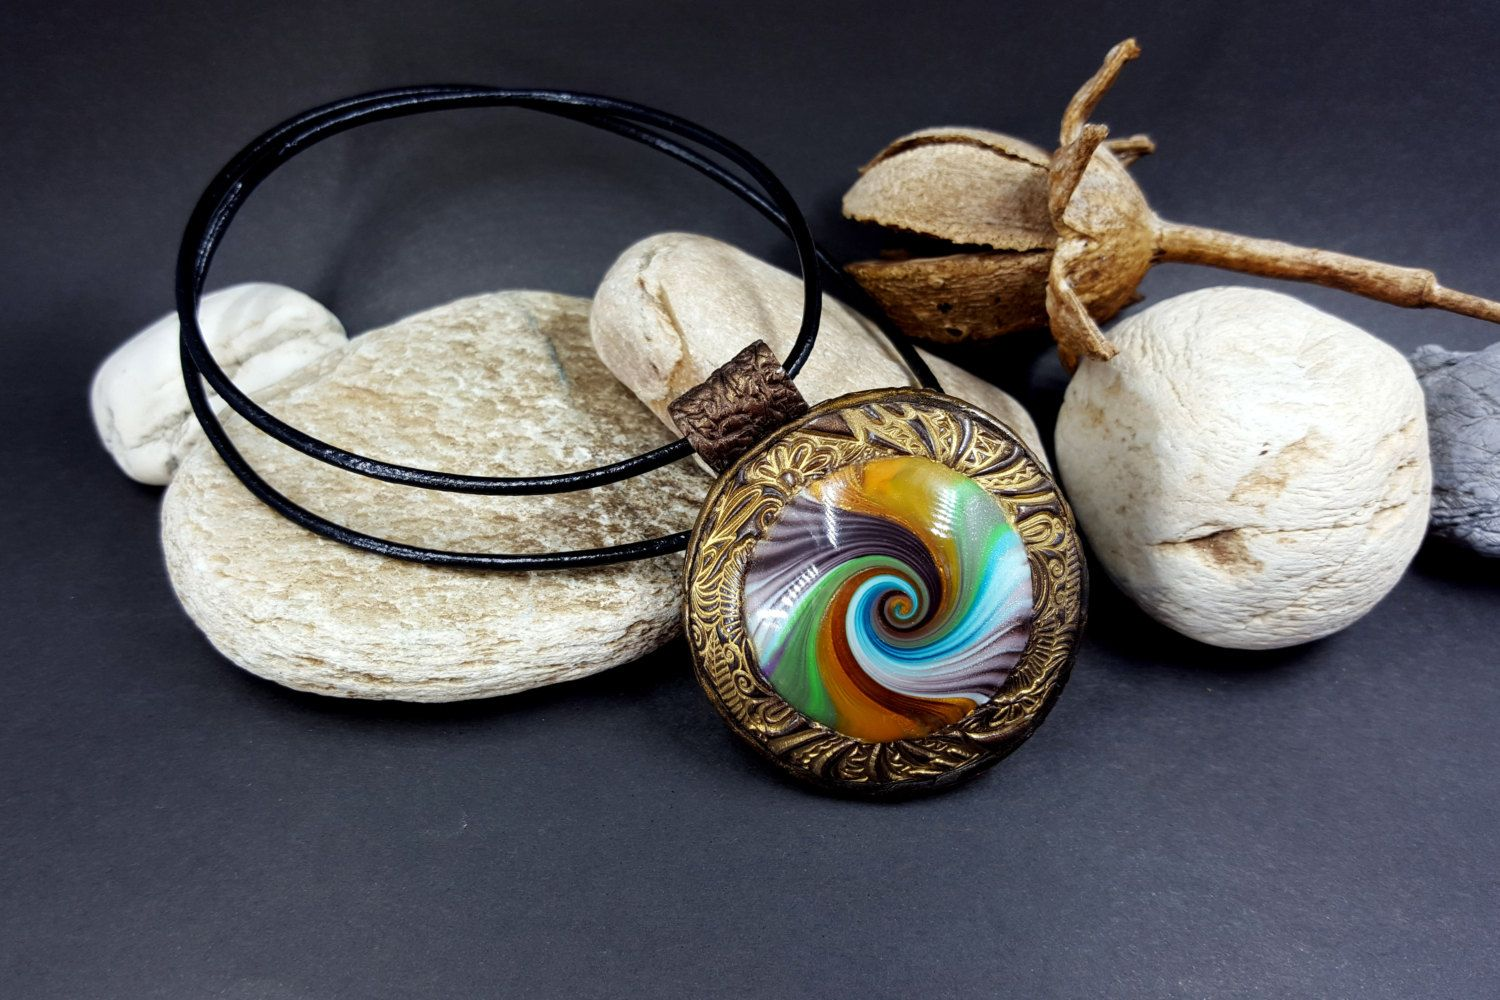 Polymer Clay Personalized Pendant with Photo Frame «Riches Tints» - Sanded & Buffed Unique Swirled Pendant Multi colour - Wife Birthday Gift by SweetyBijou on Etsy